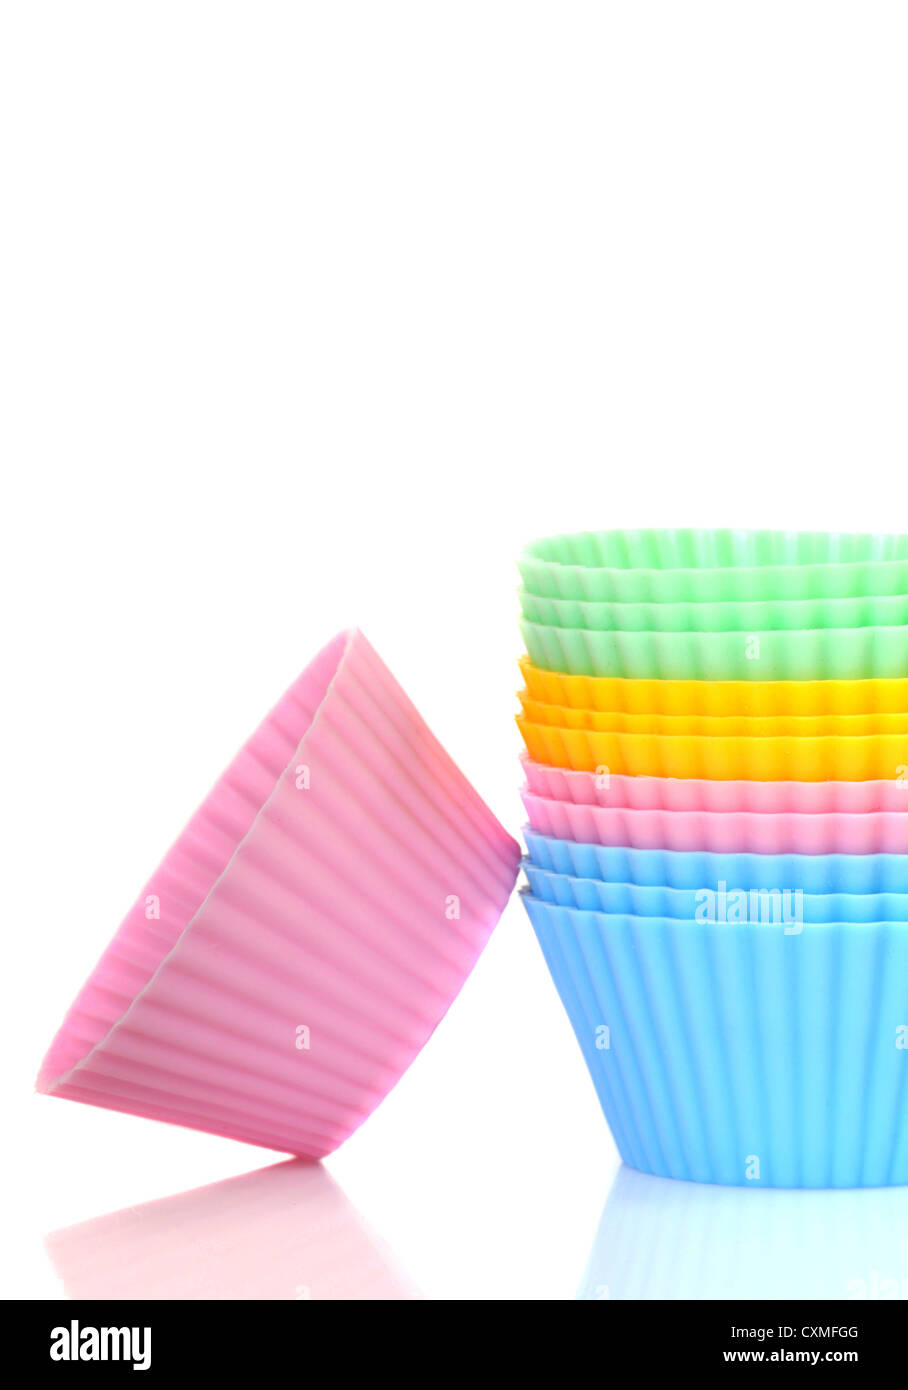 Stack of a variety of colorful cupcake liners - Stock Image